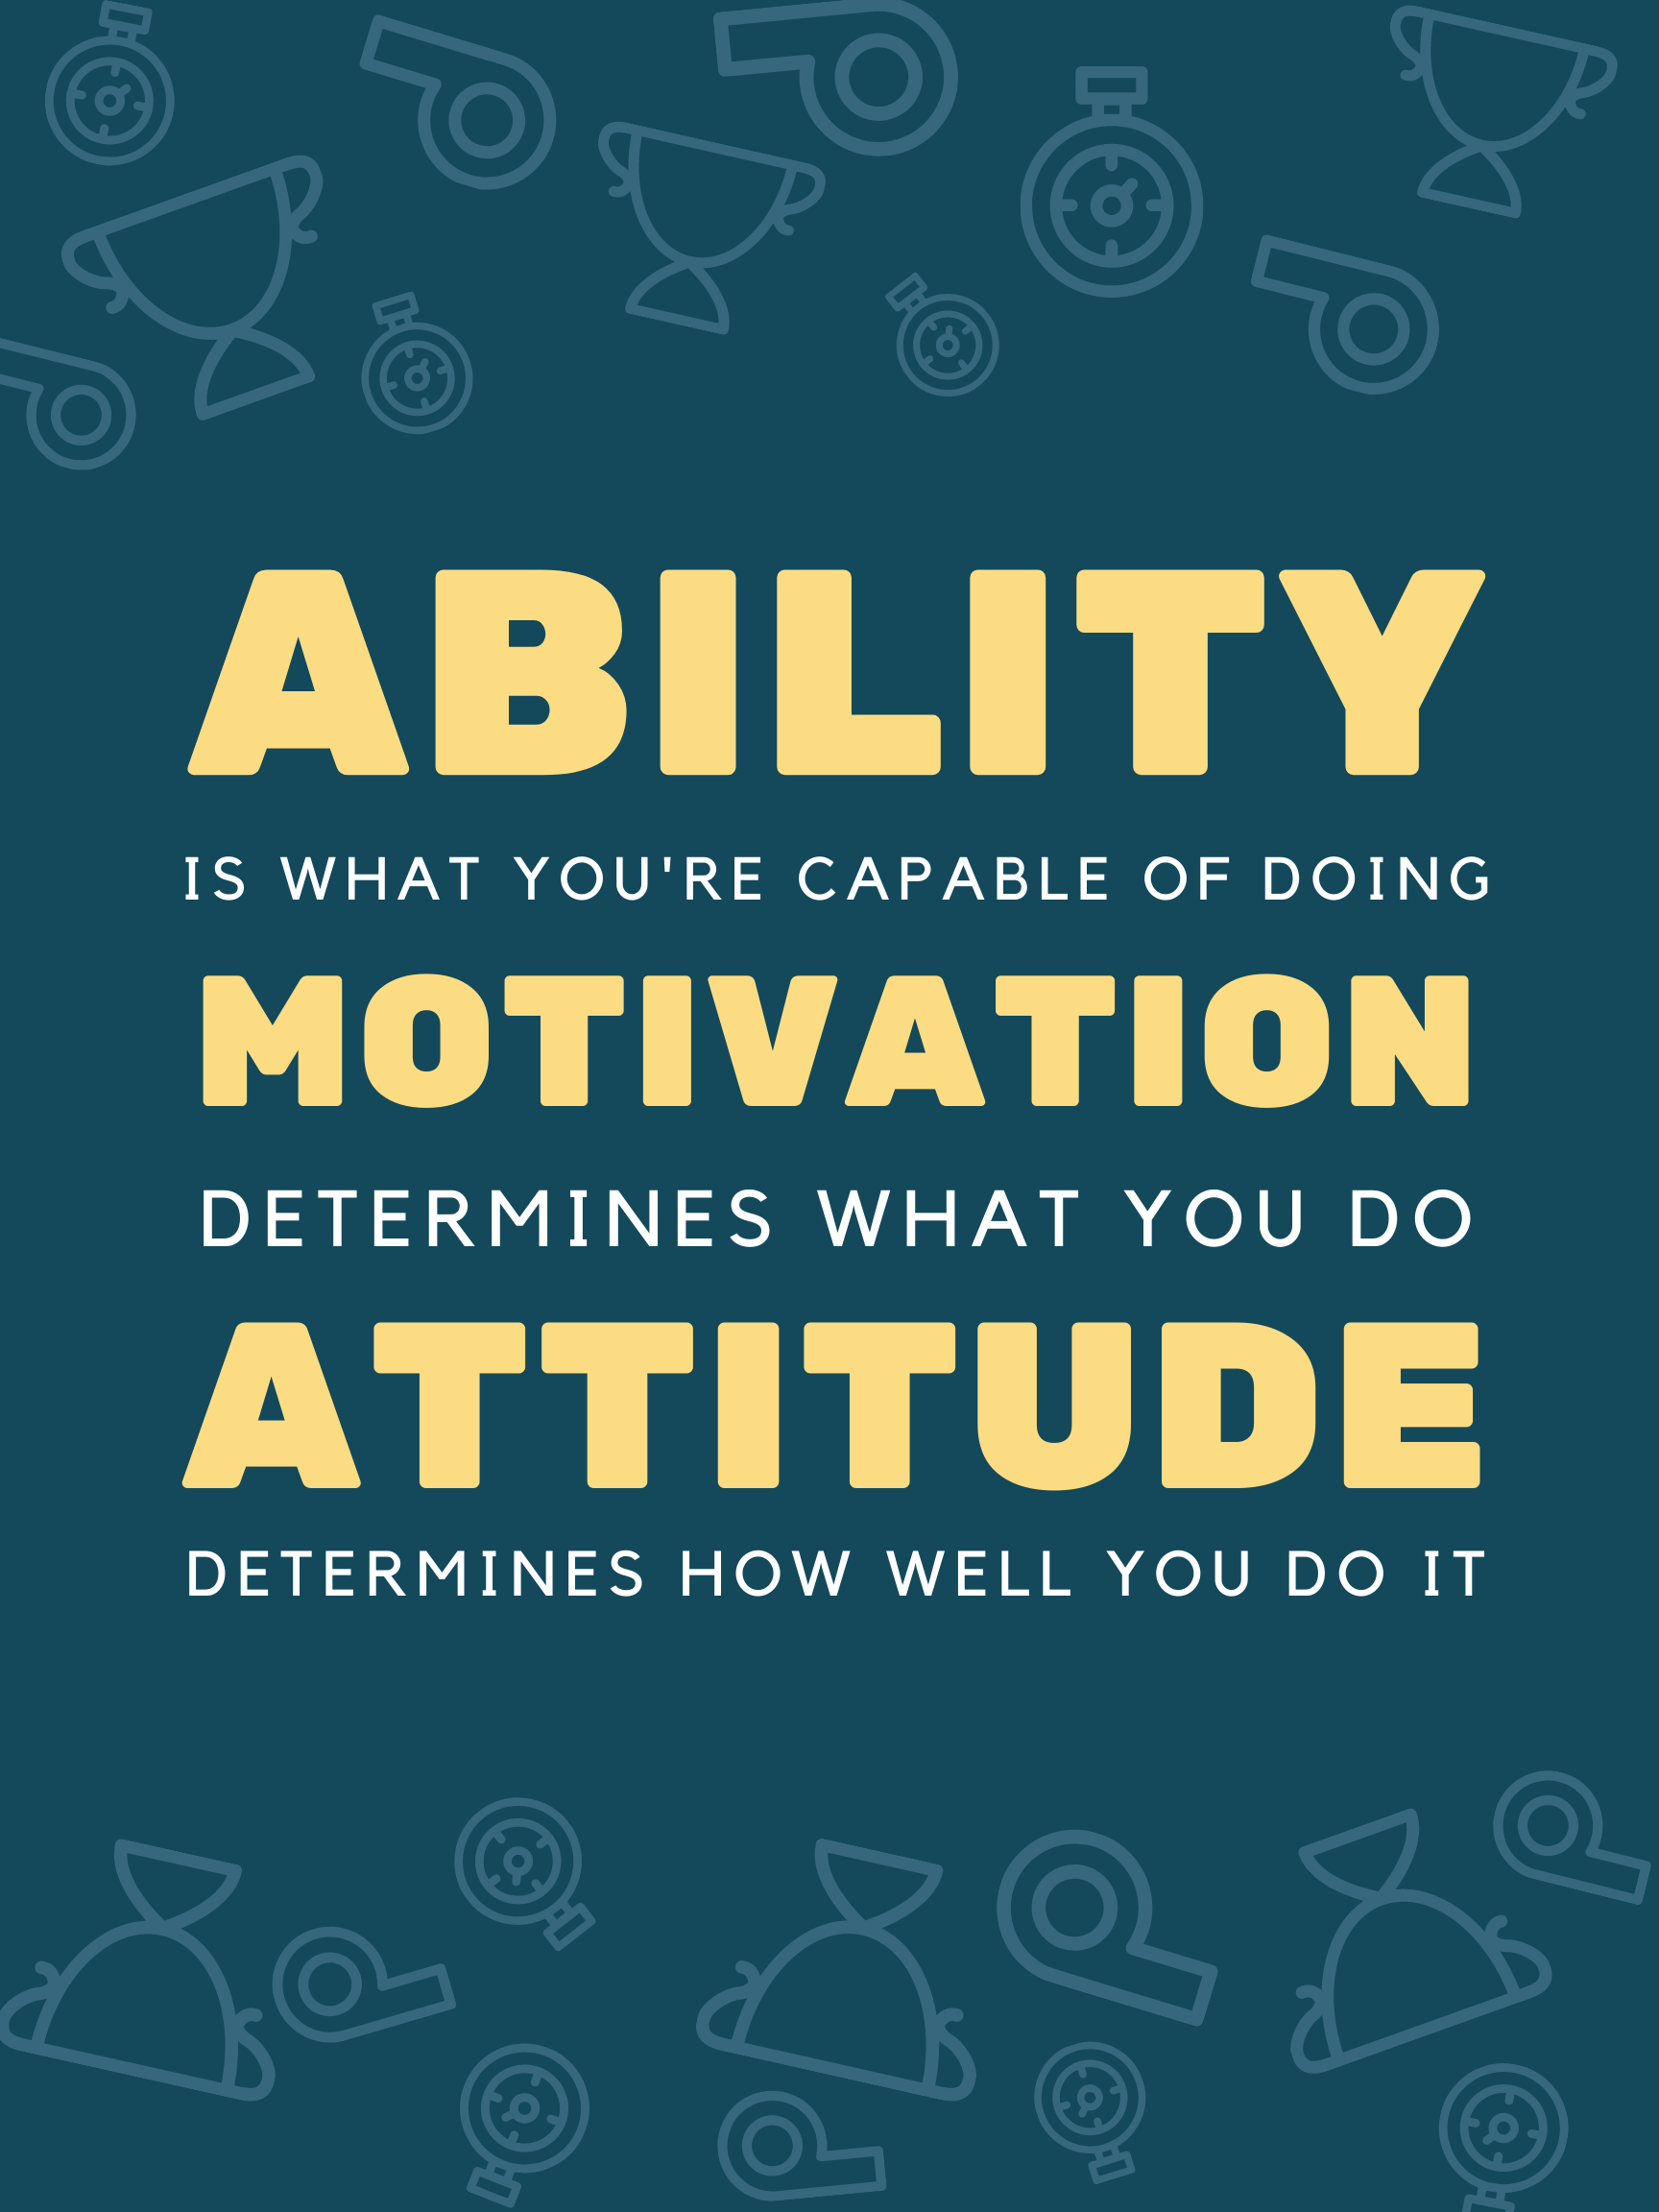 Ability and Motivation